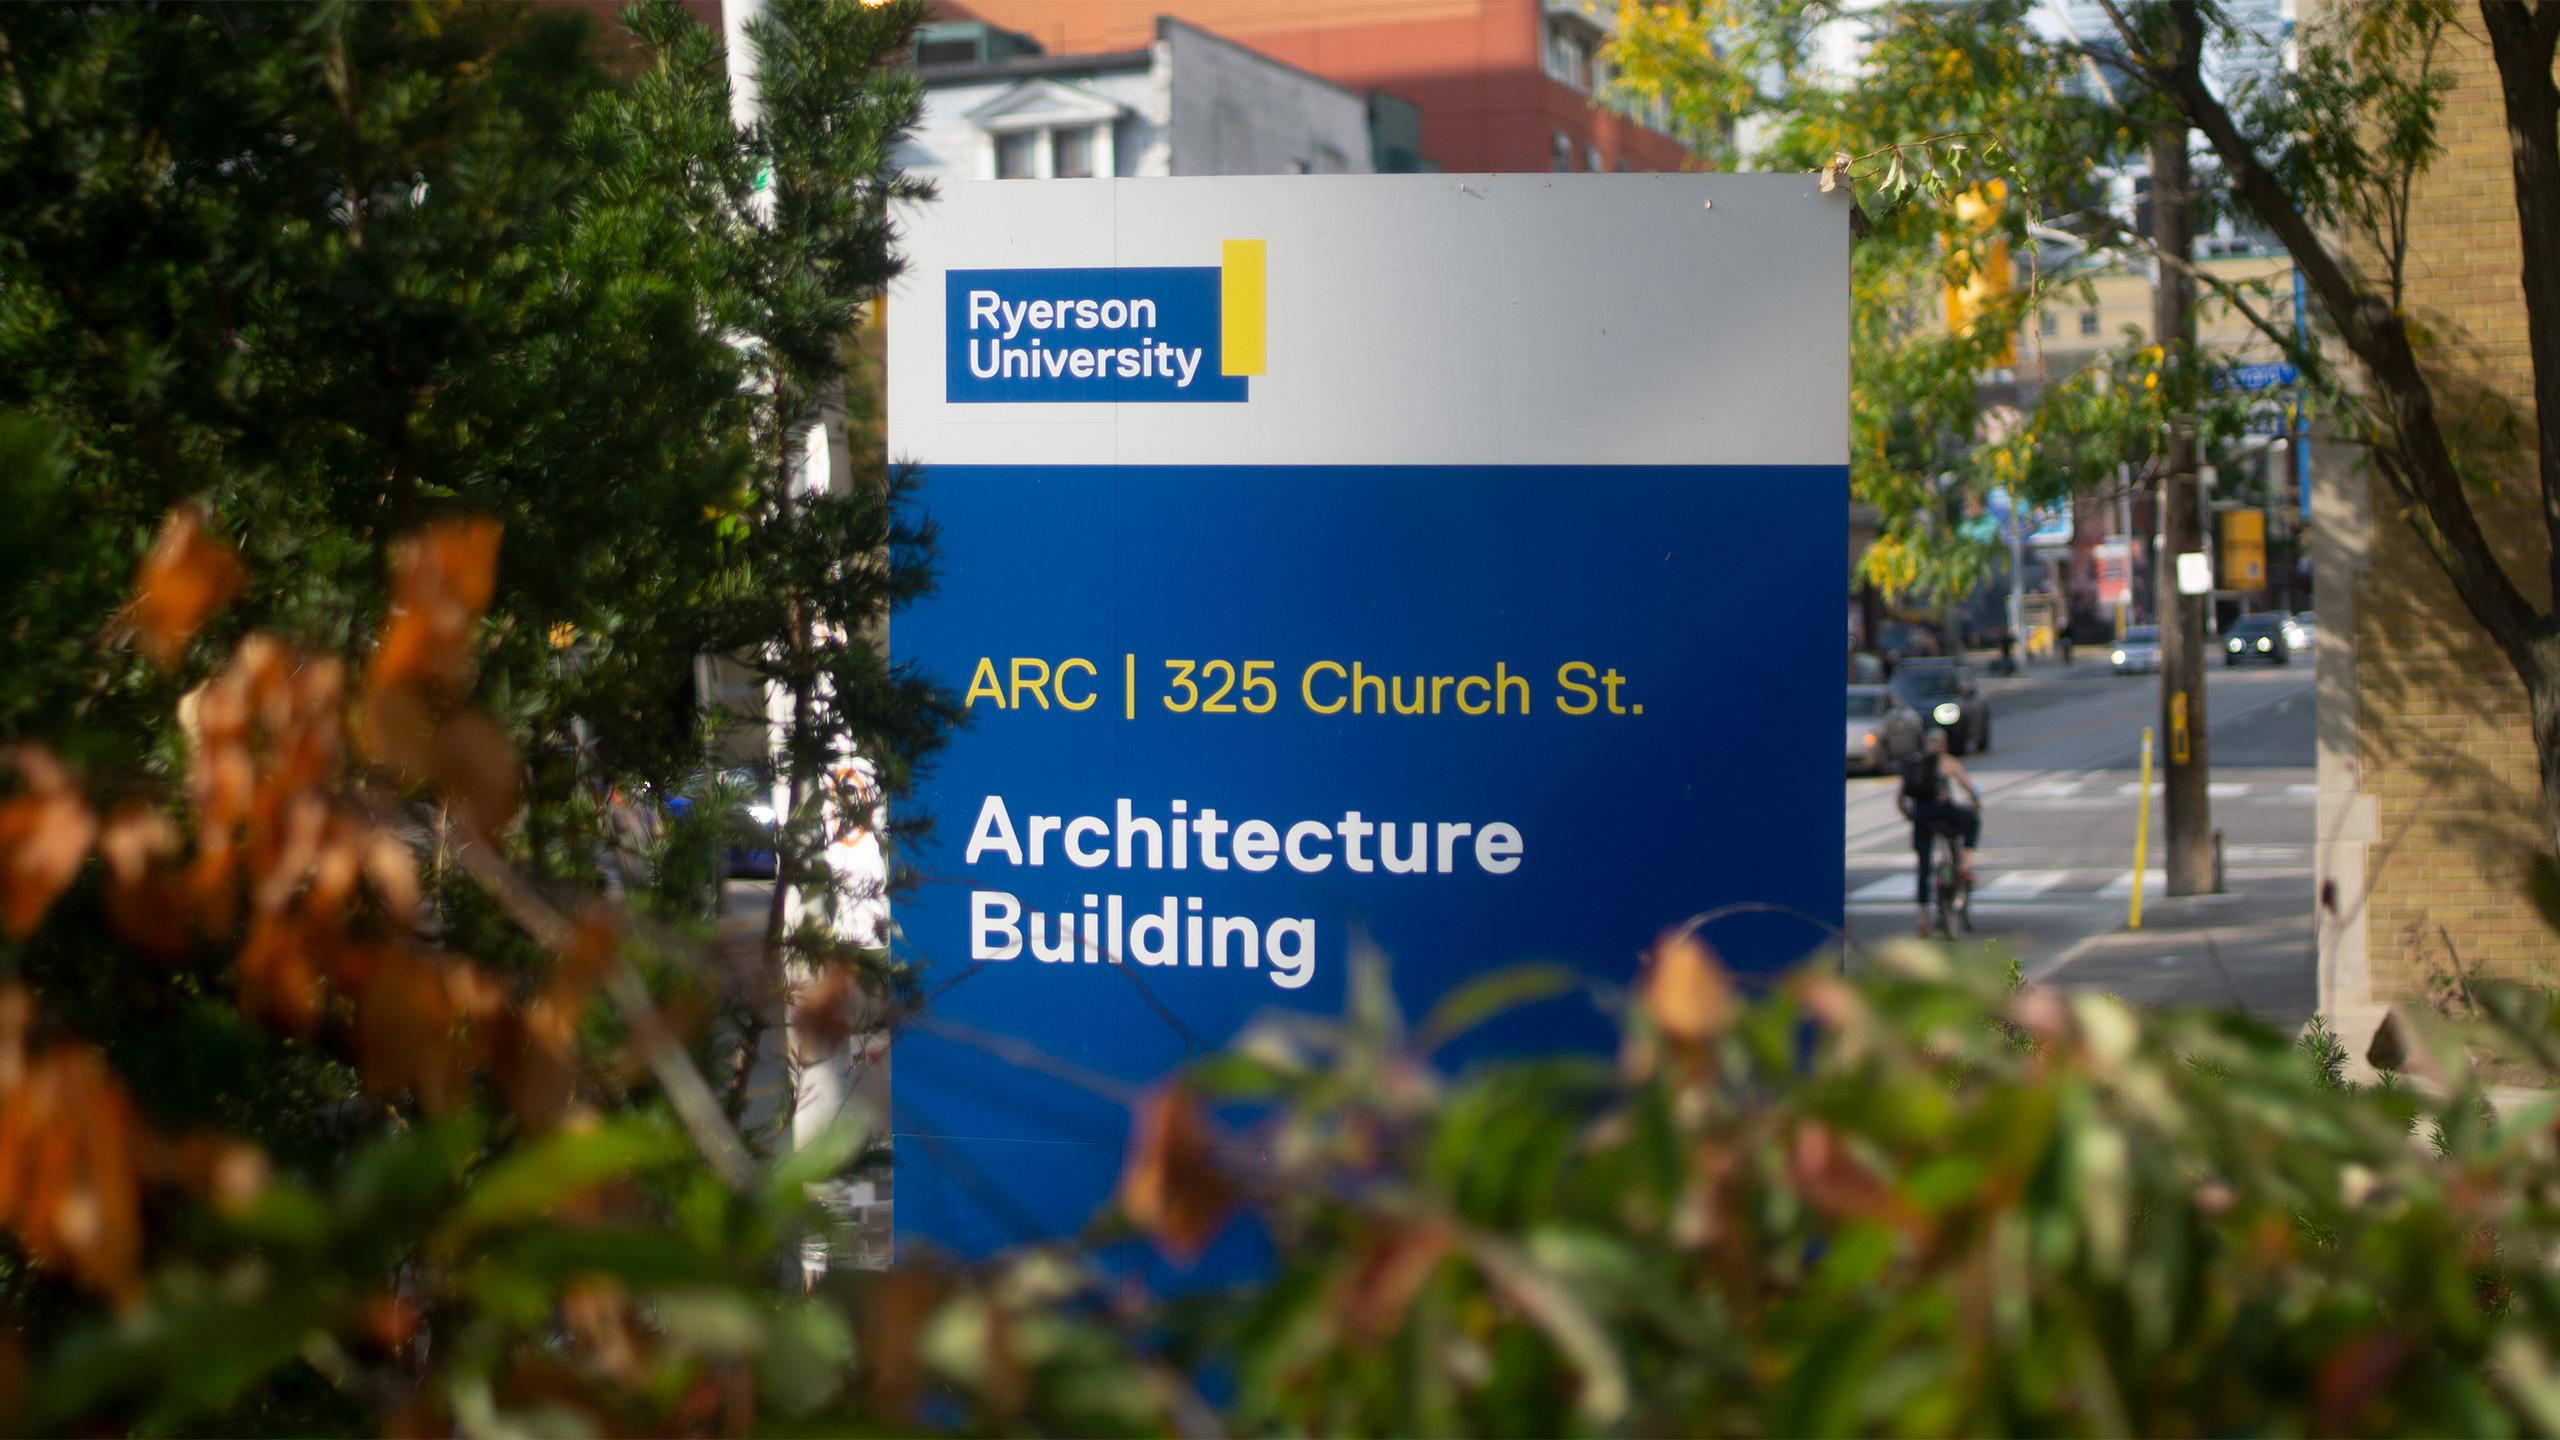 Photo of a Ryerson sign that says Architecture Building at 325 Church Street.